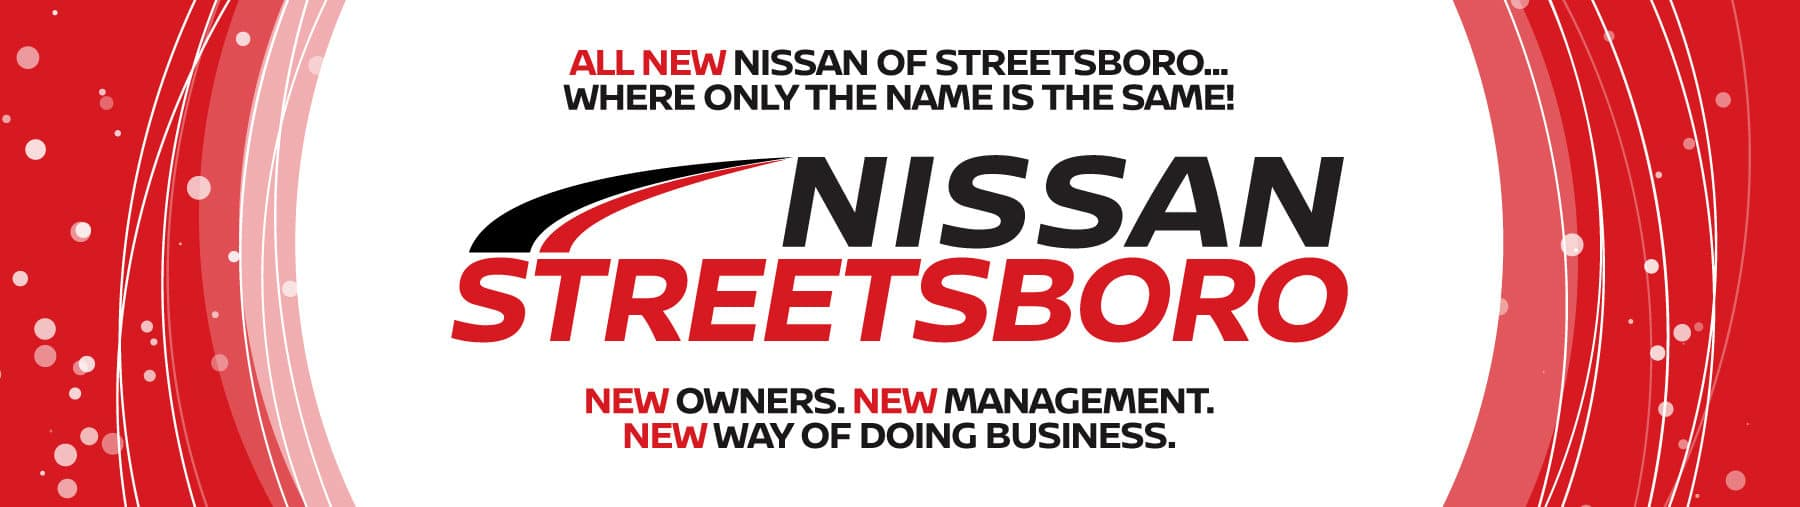 Nissan Dealership located in Streetsboro Ohio